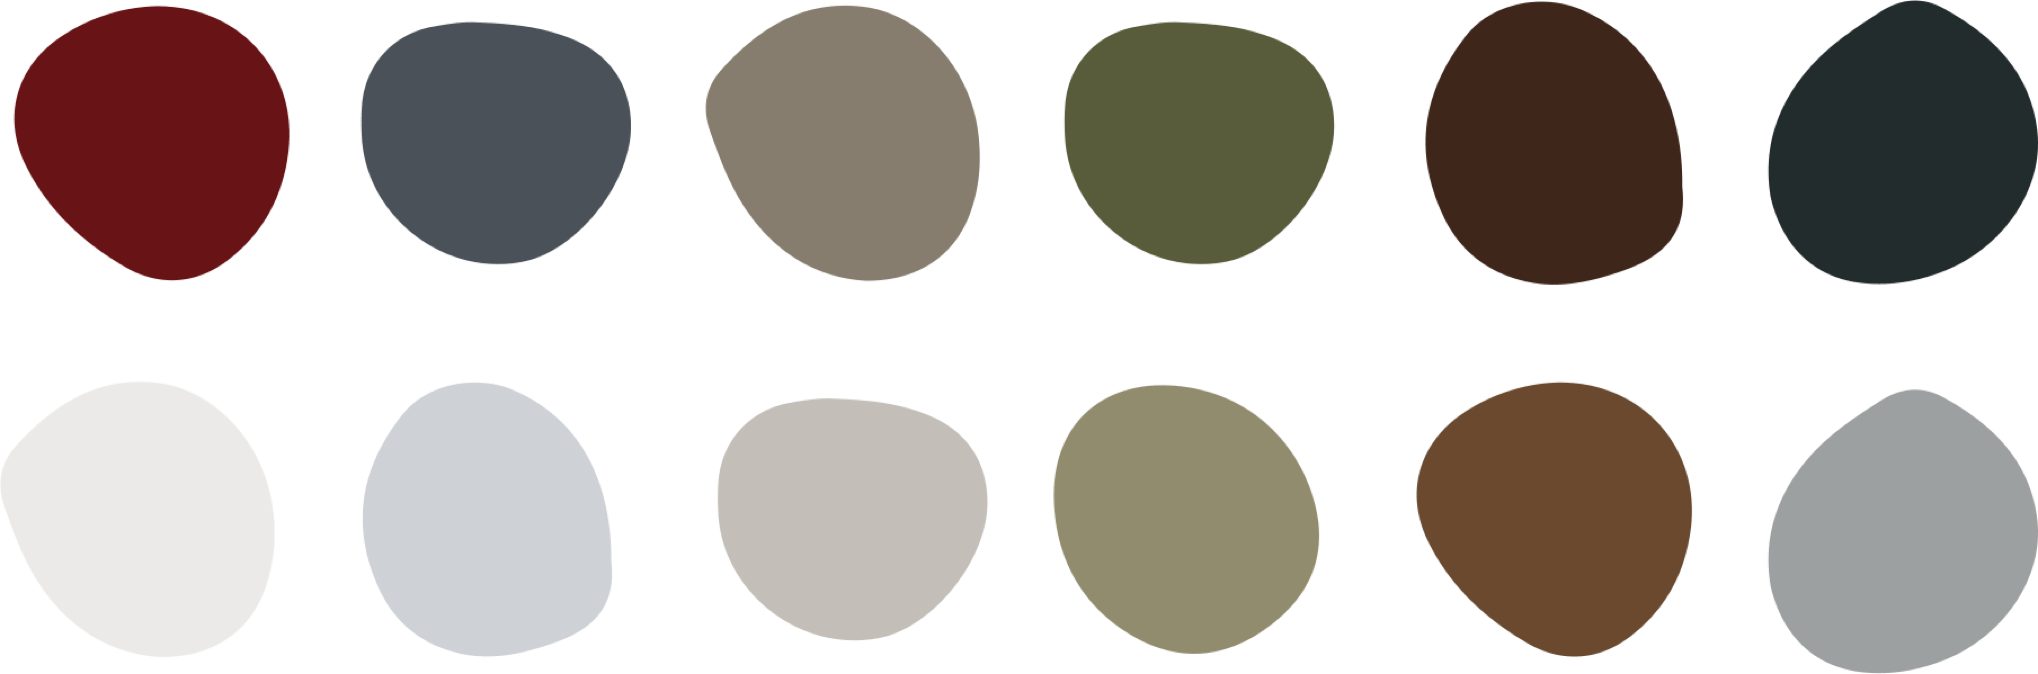 King Design The Miquon School Color Palette